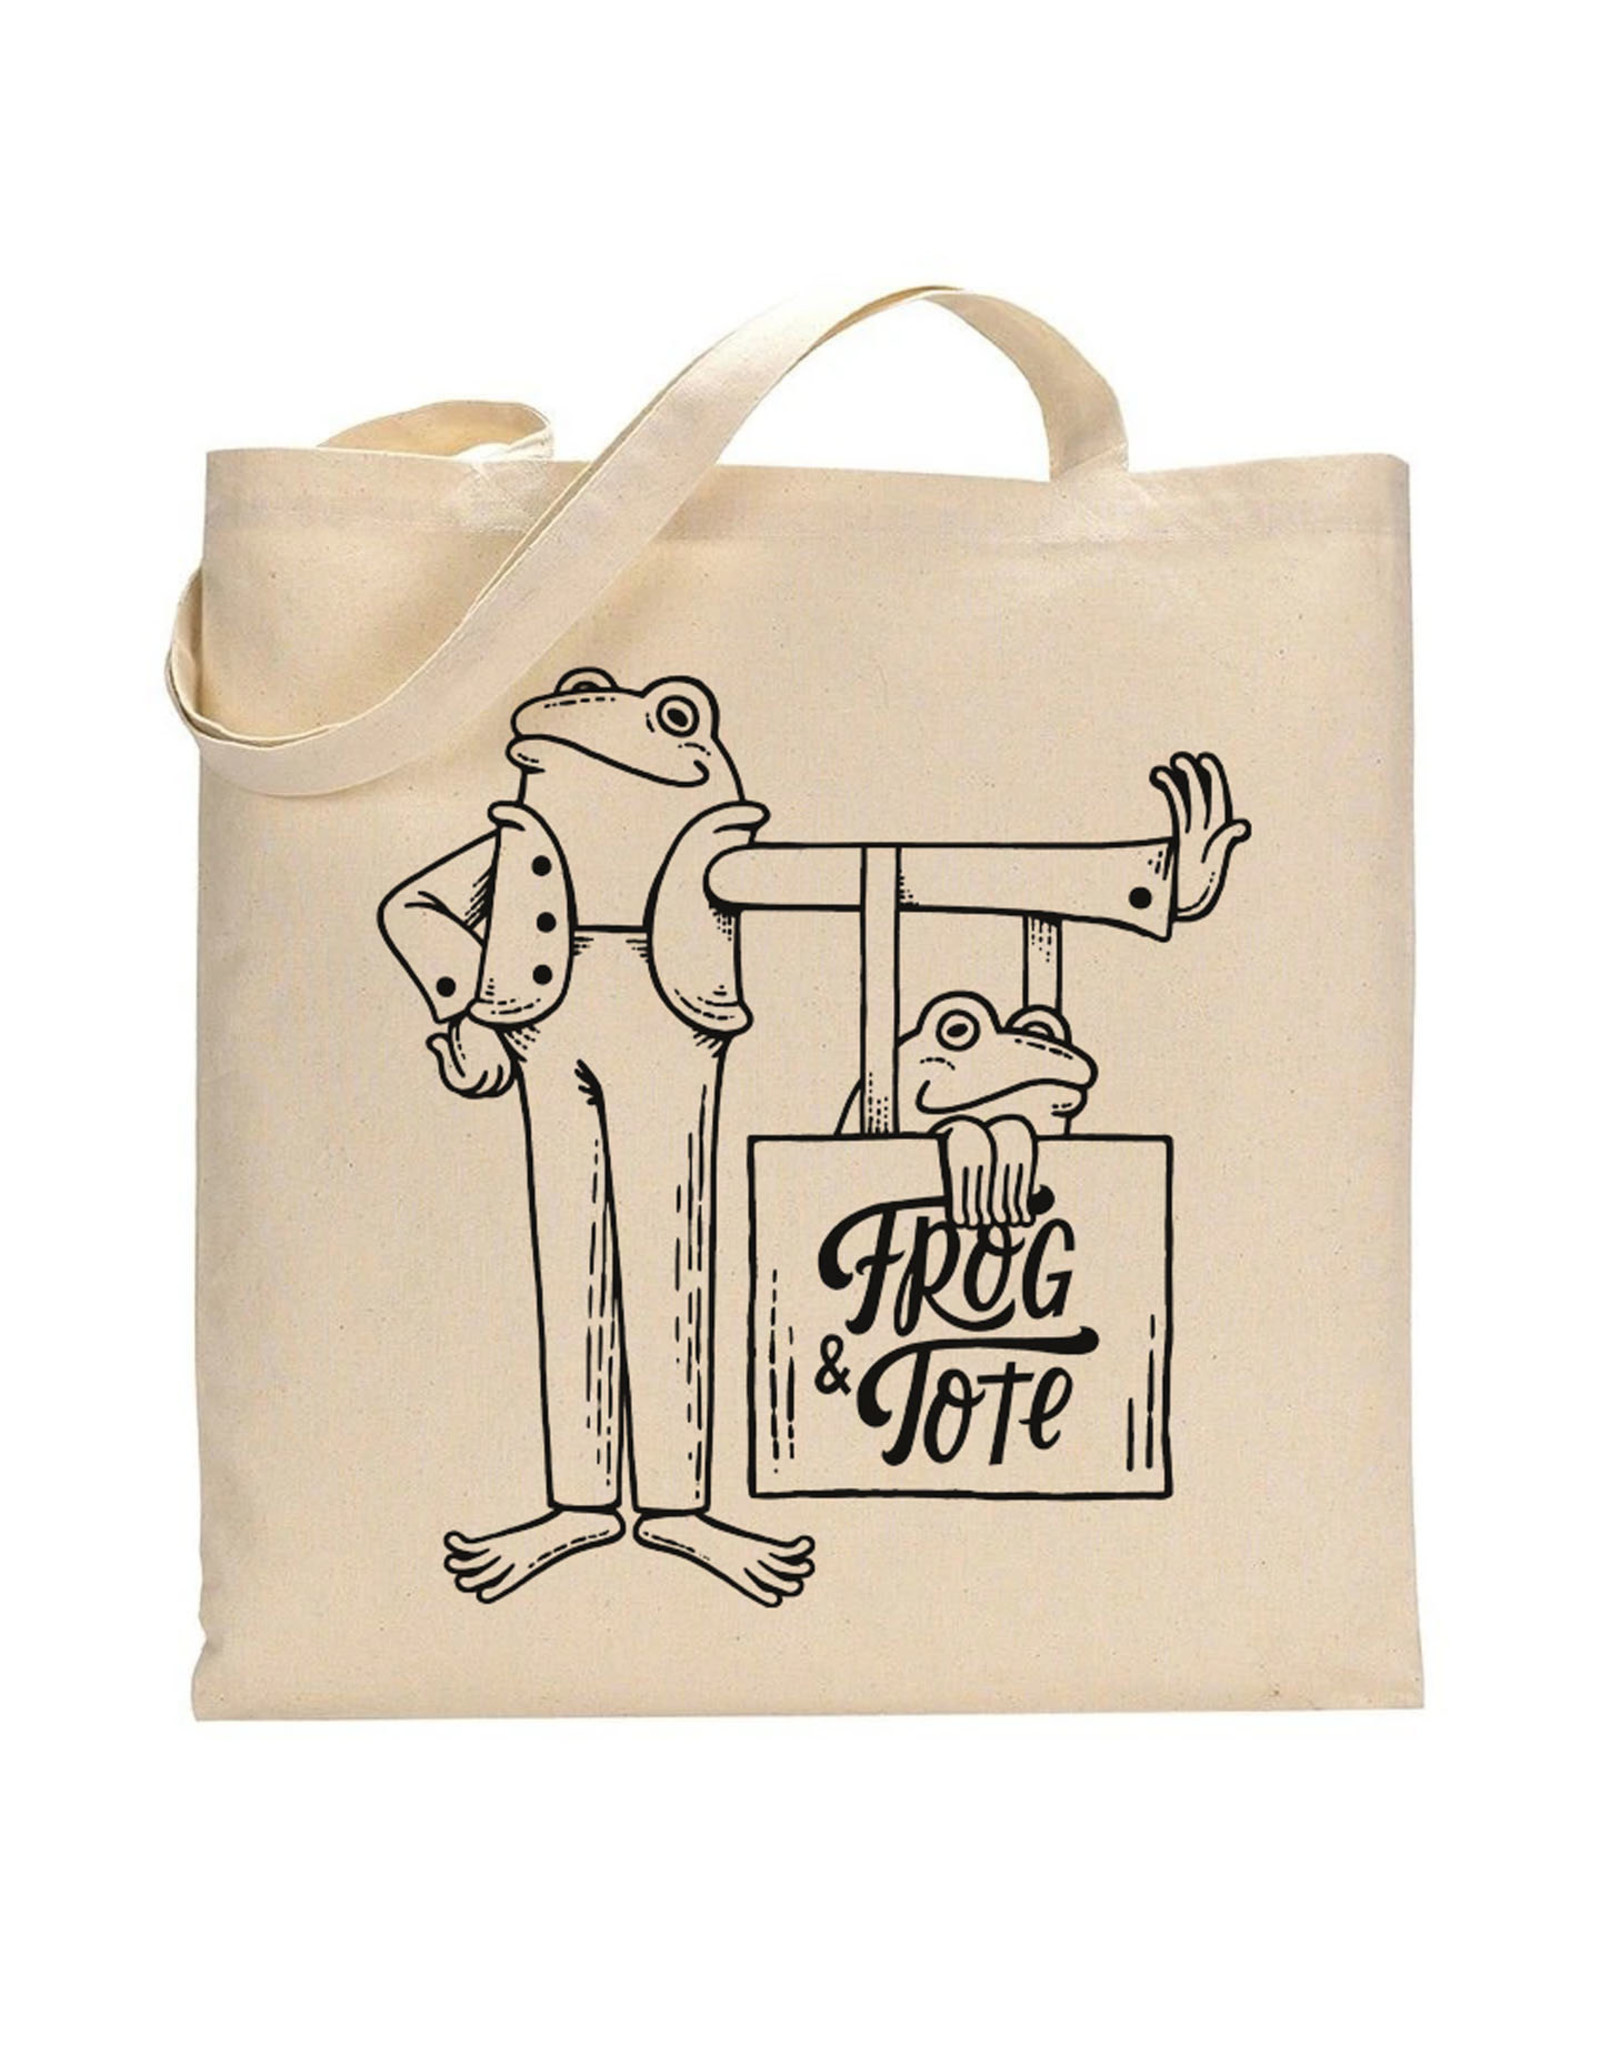 Frog & Tote